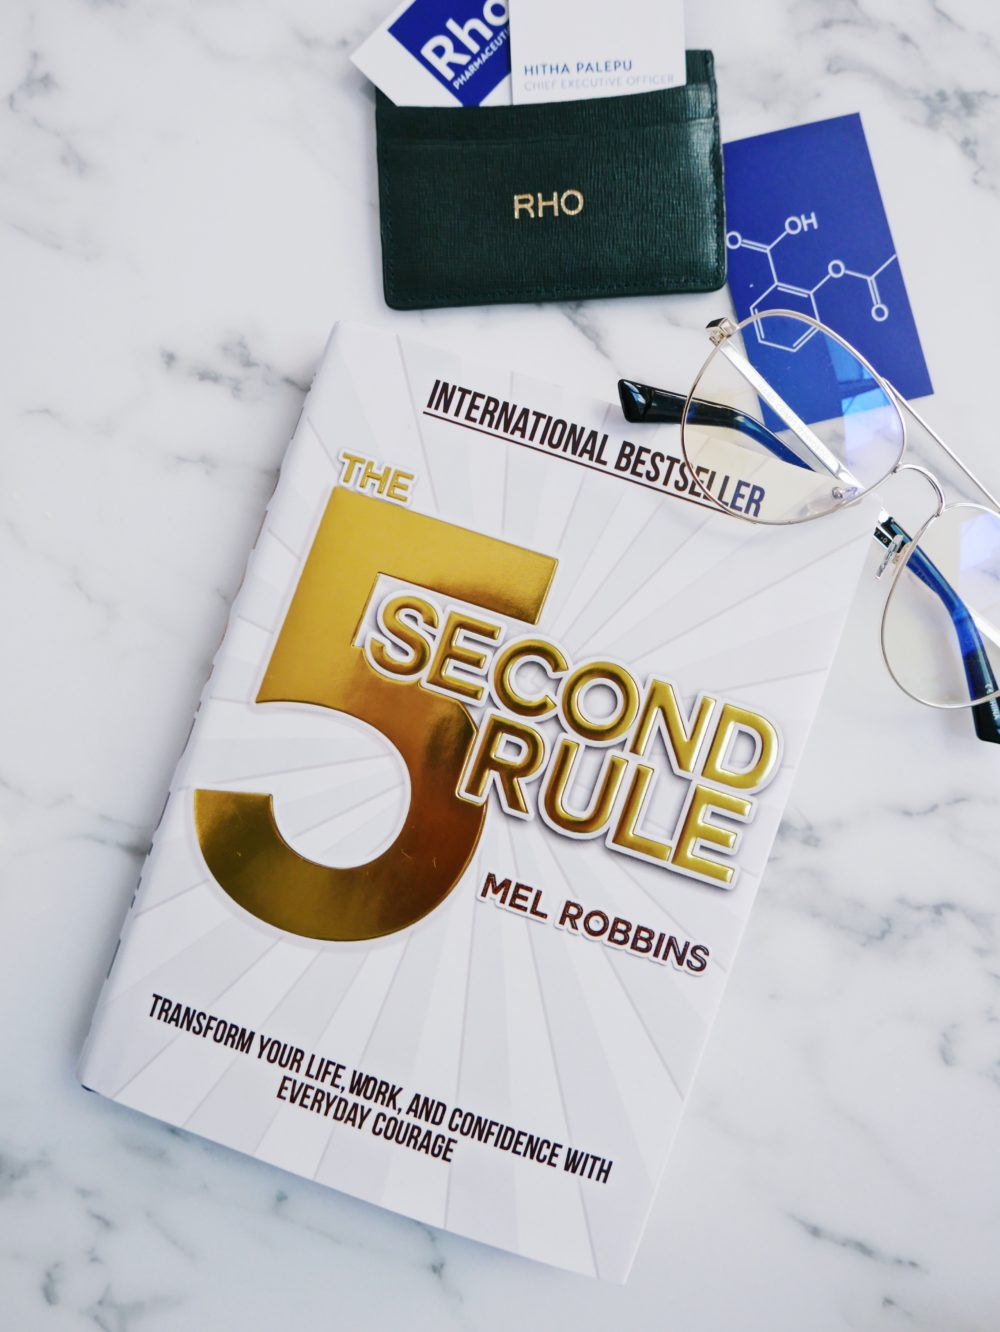 5 second rule mel robbins review